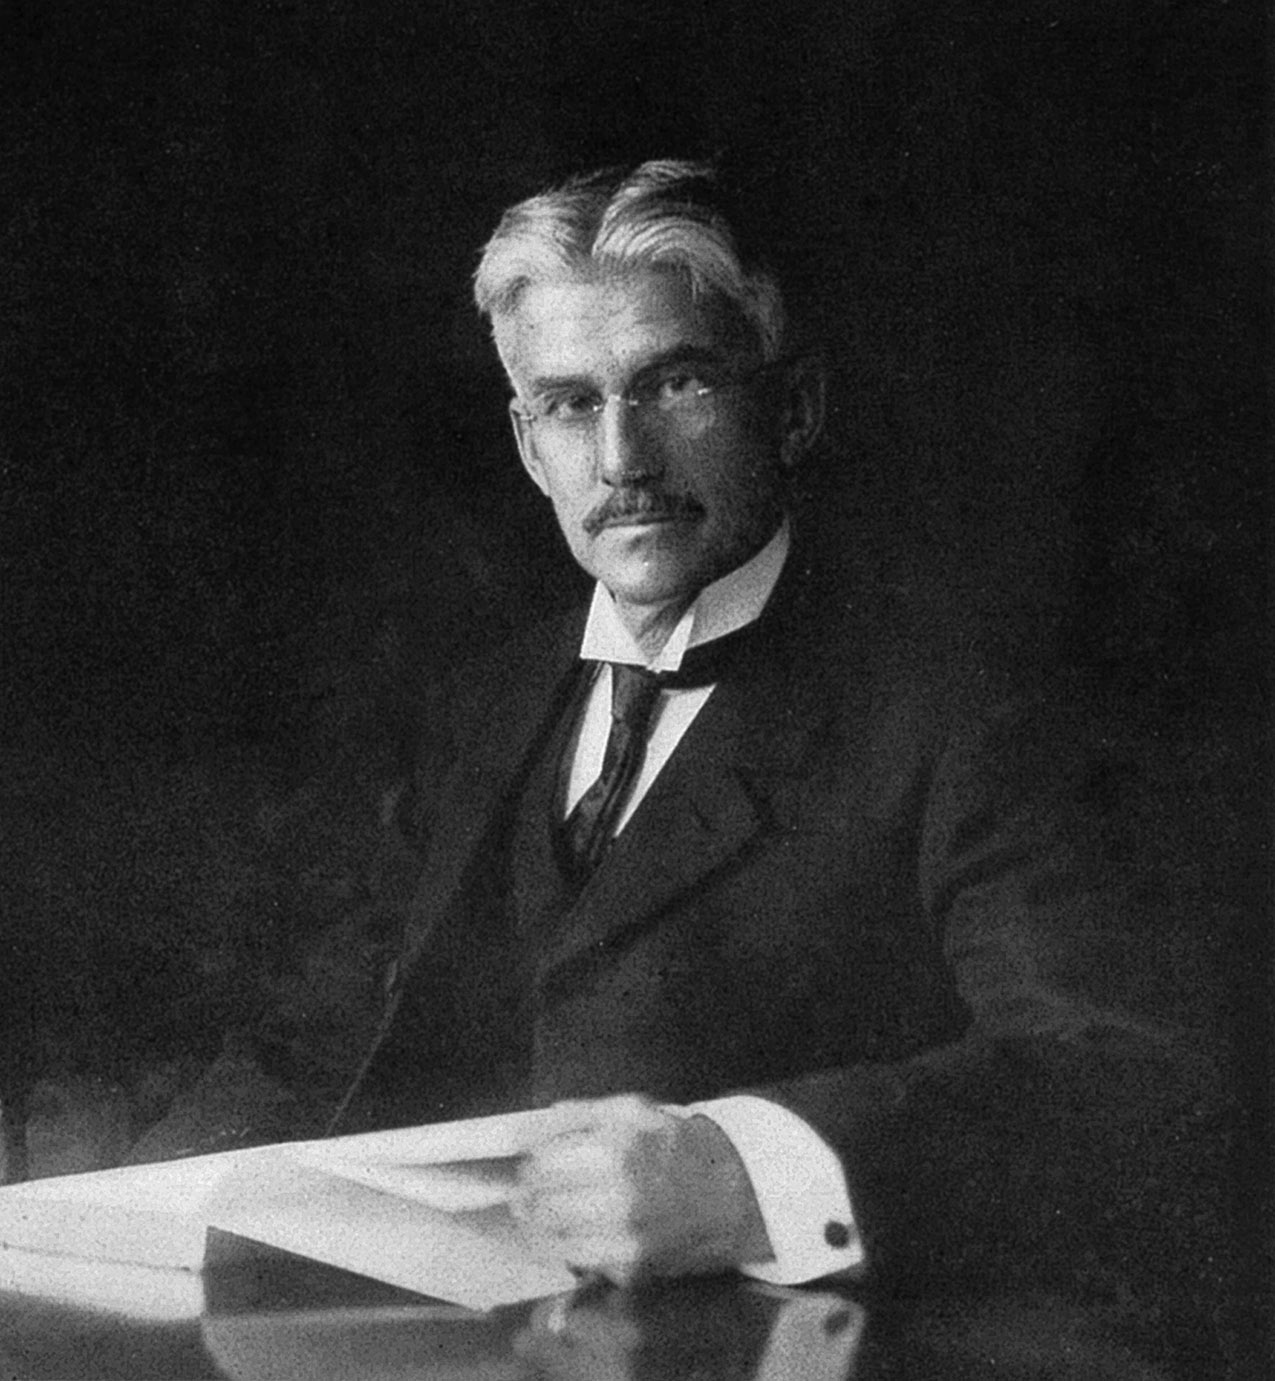 WholeDude-WholeDesigner: Albert Henry Munsell(1858-1918), an artist of distinction, a gifted teacher of art, made the description of color accurate and convenient for teaching of color. He made the foundation for all other Color Order Systems.